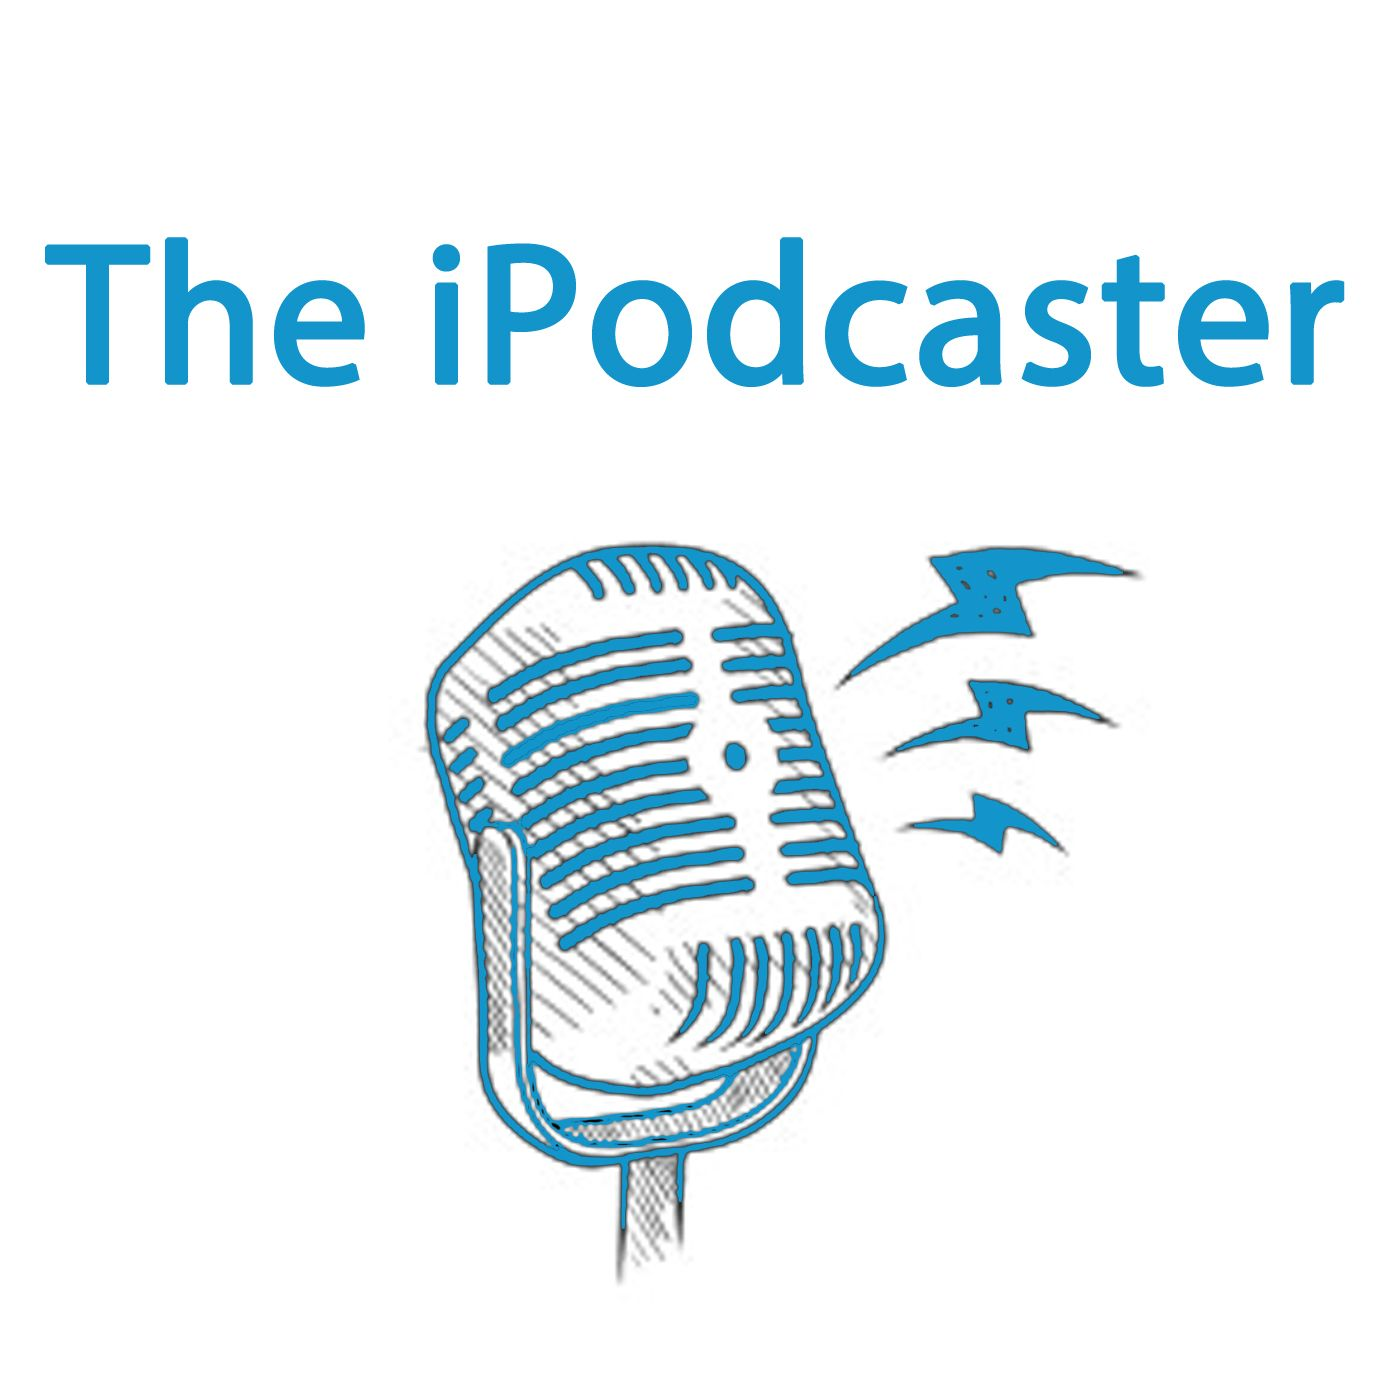 The iPodcaster